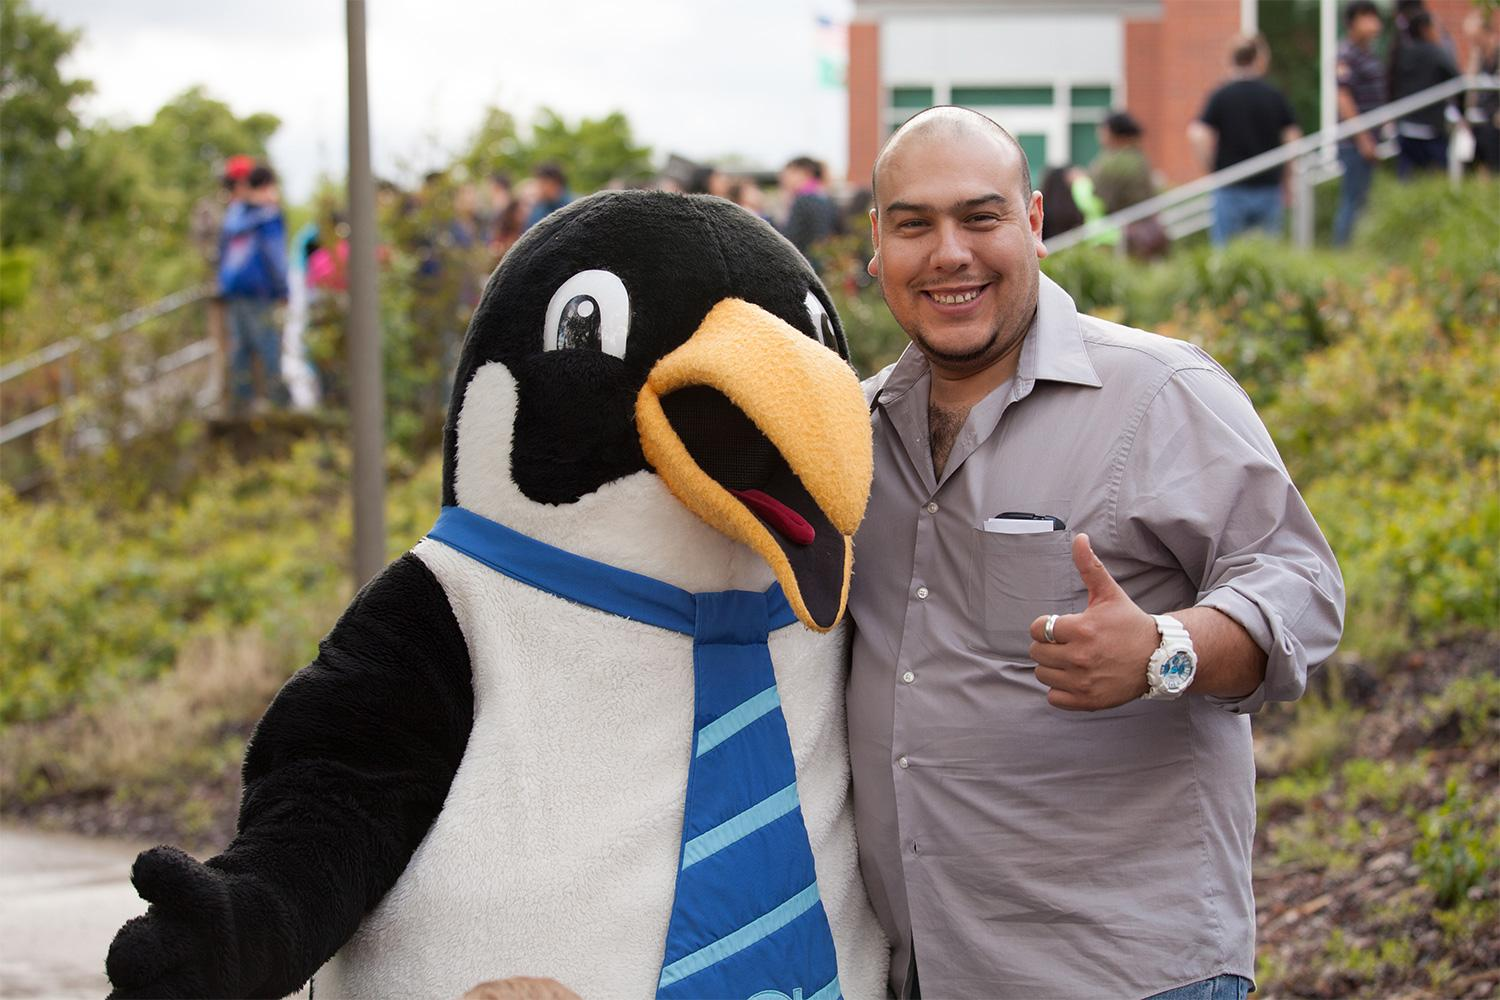 Visitor to the Latino Celebration poses with Oswald